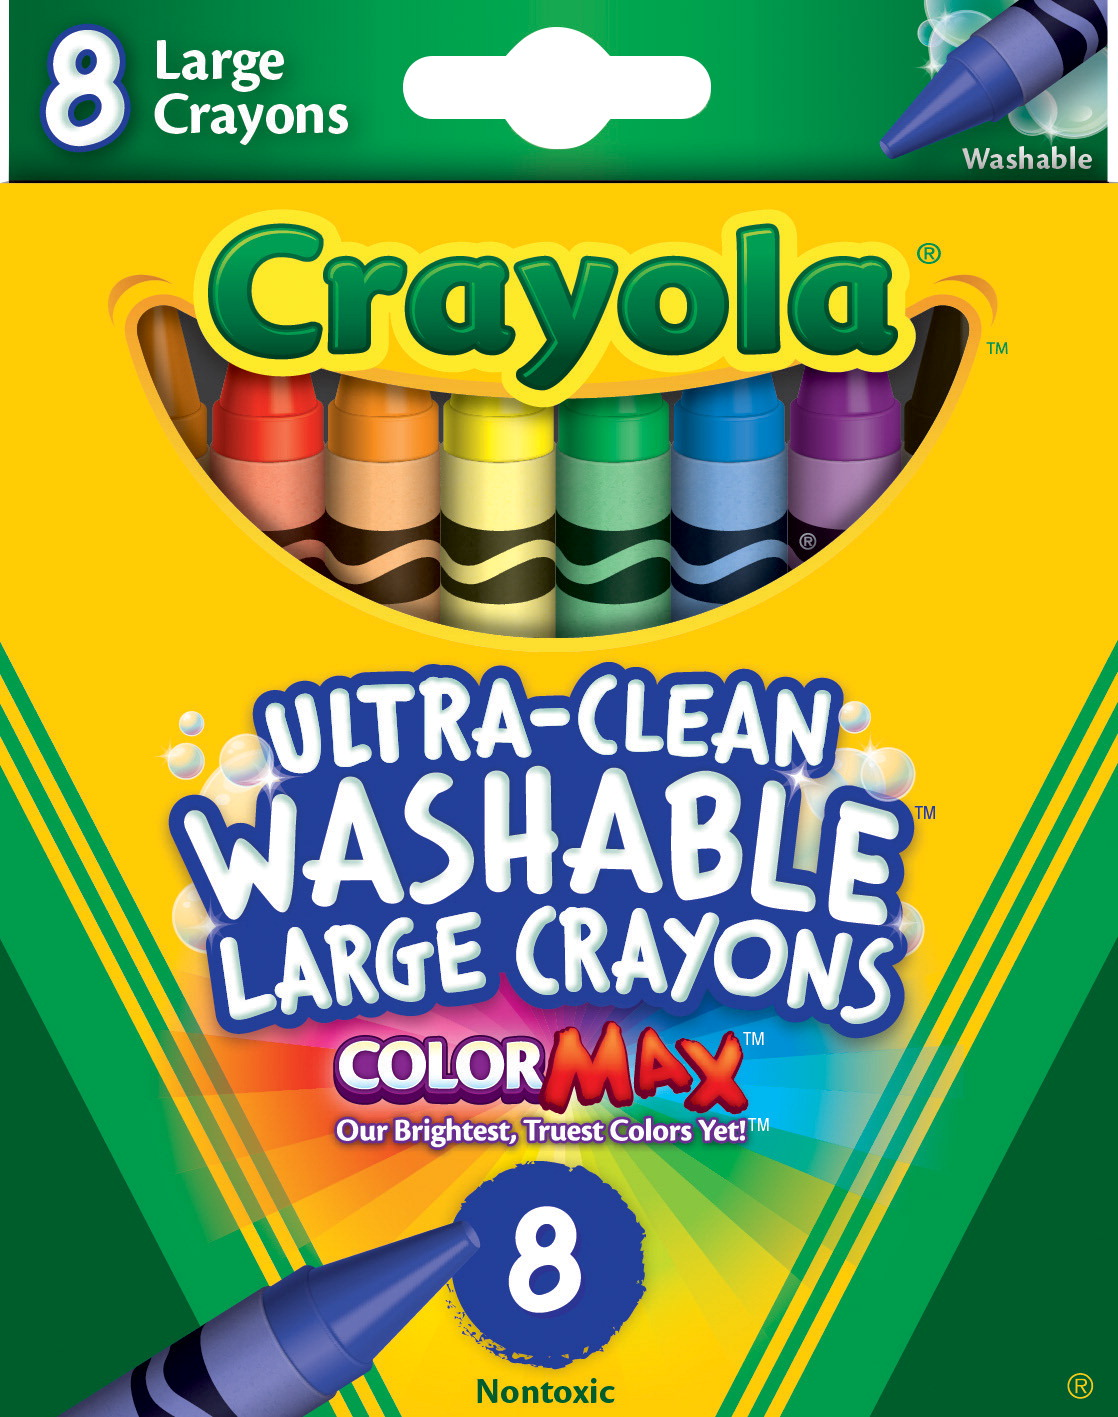 Crayola Large Non-Toxic Washable Crayon Set, 7/16 X 4 in, Assorted Color, Set of 8